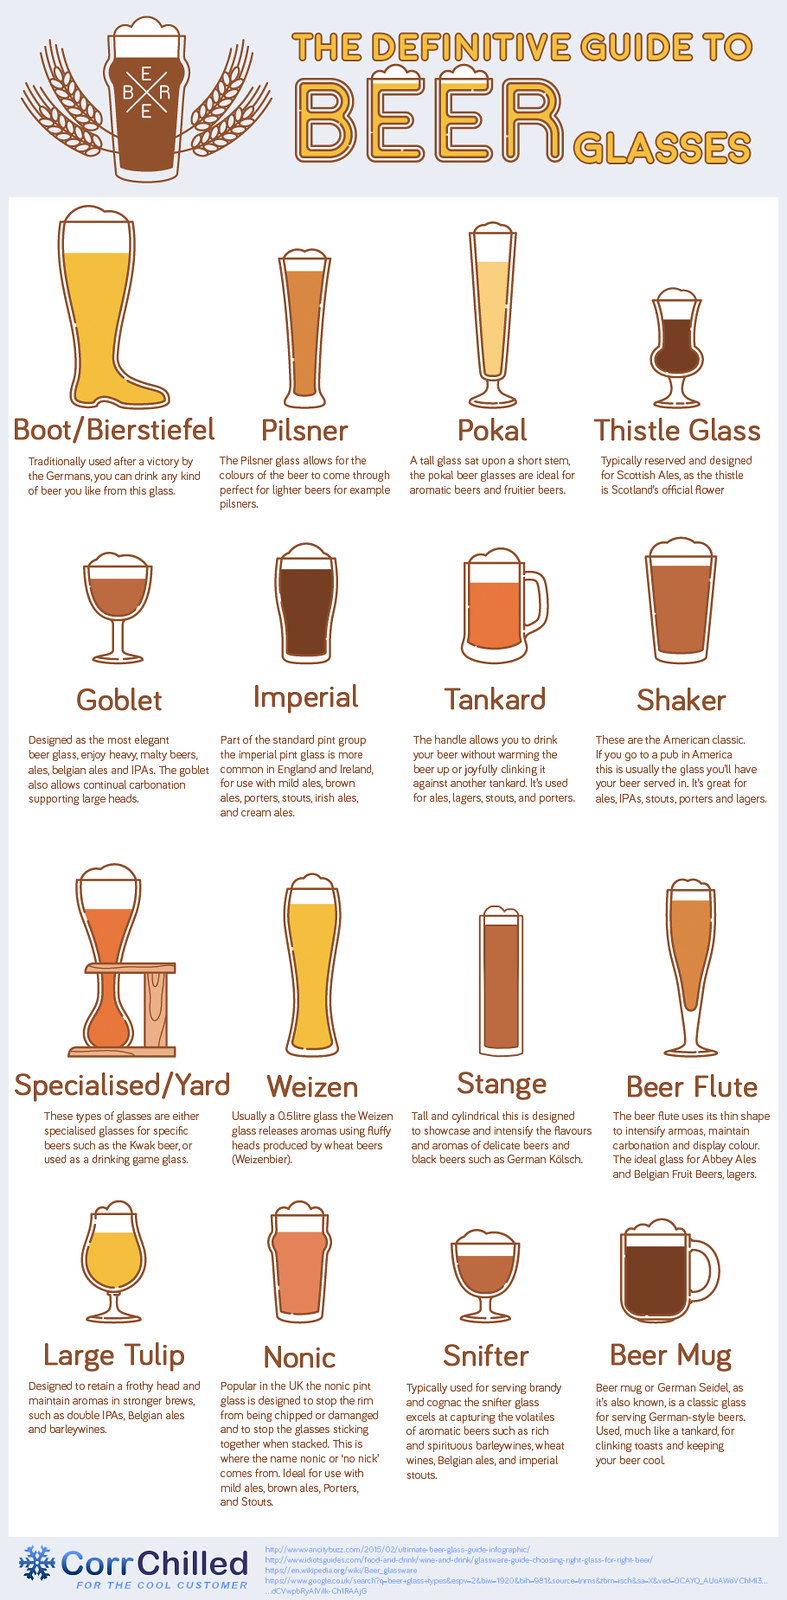 the-definitive-guide-to-beer-glasses